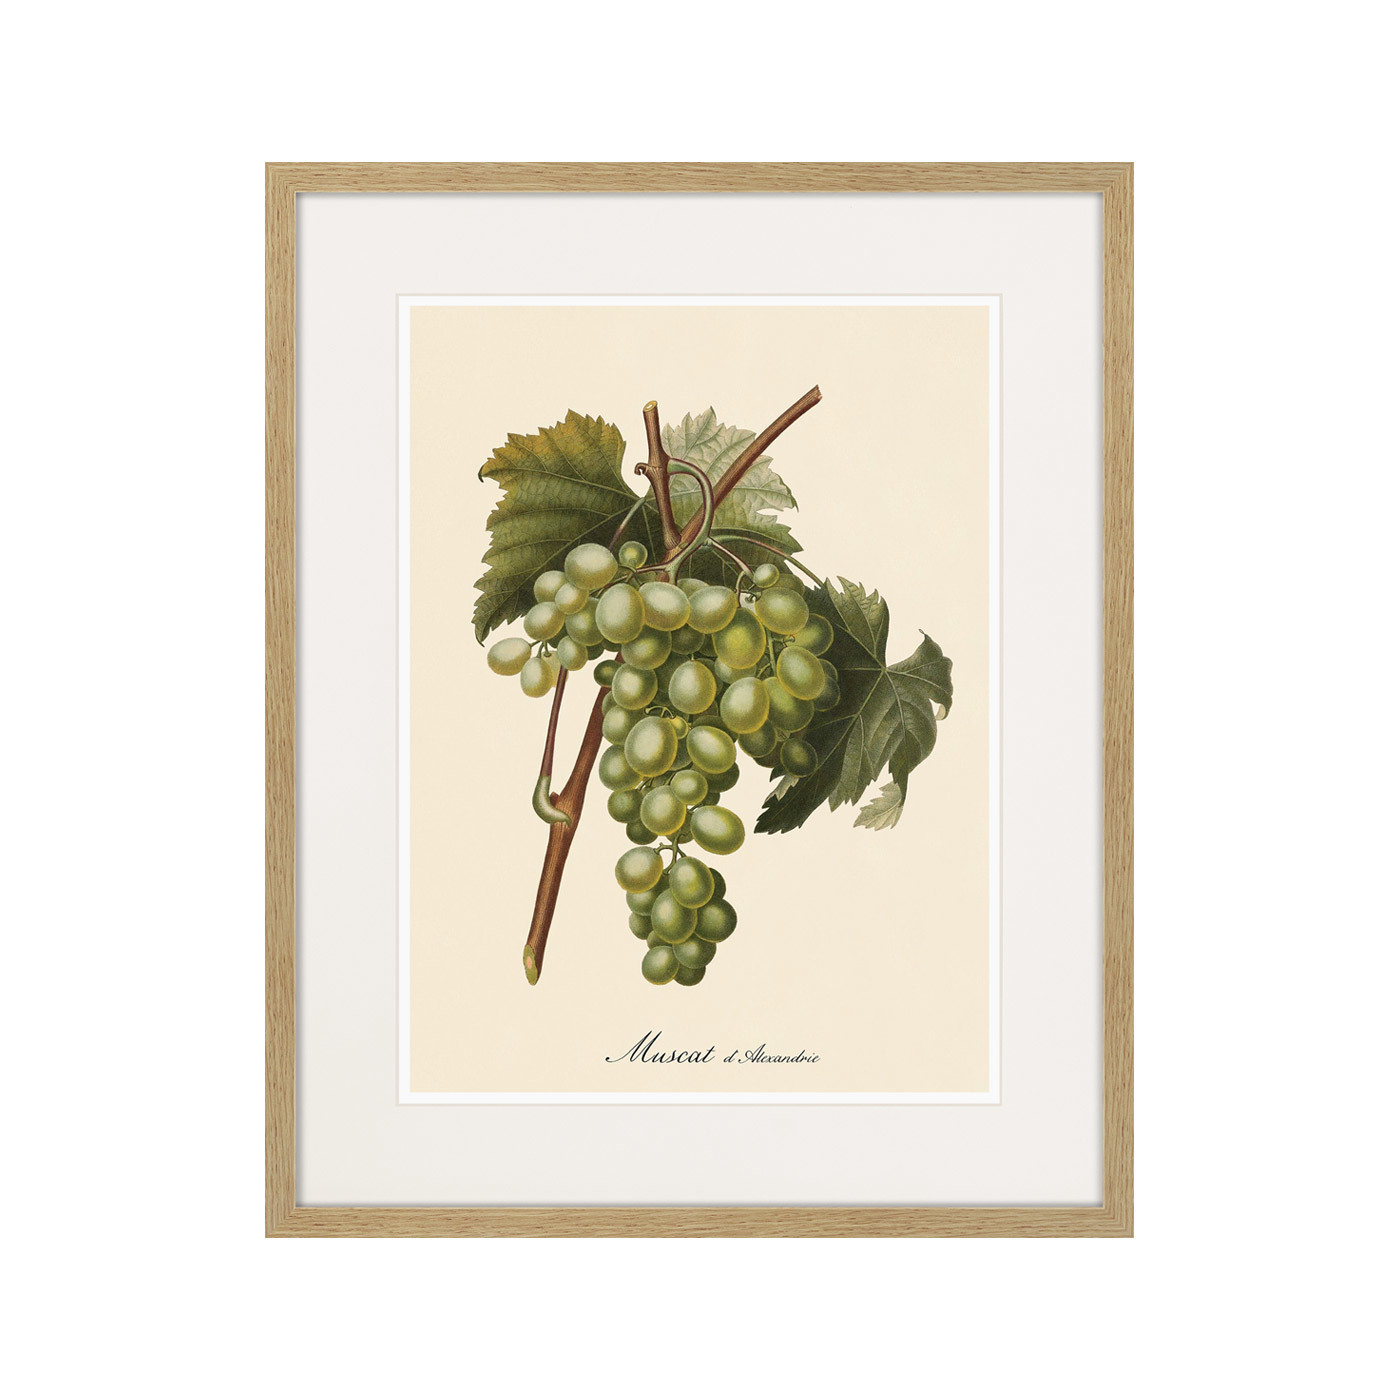 Juicy fruit lithography №13, 1870г.